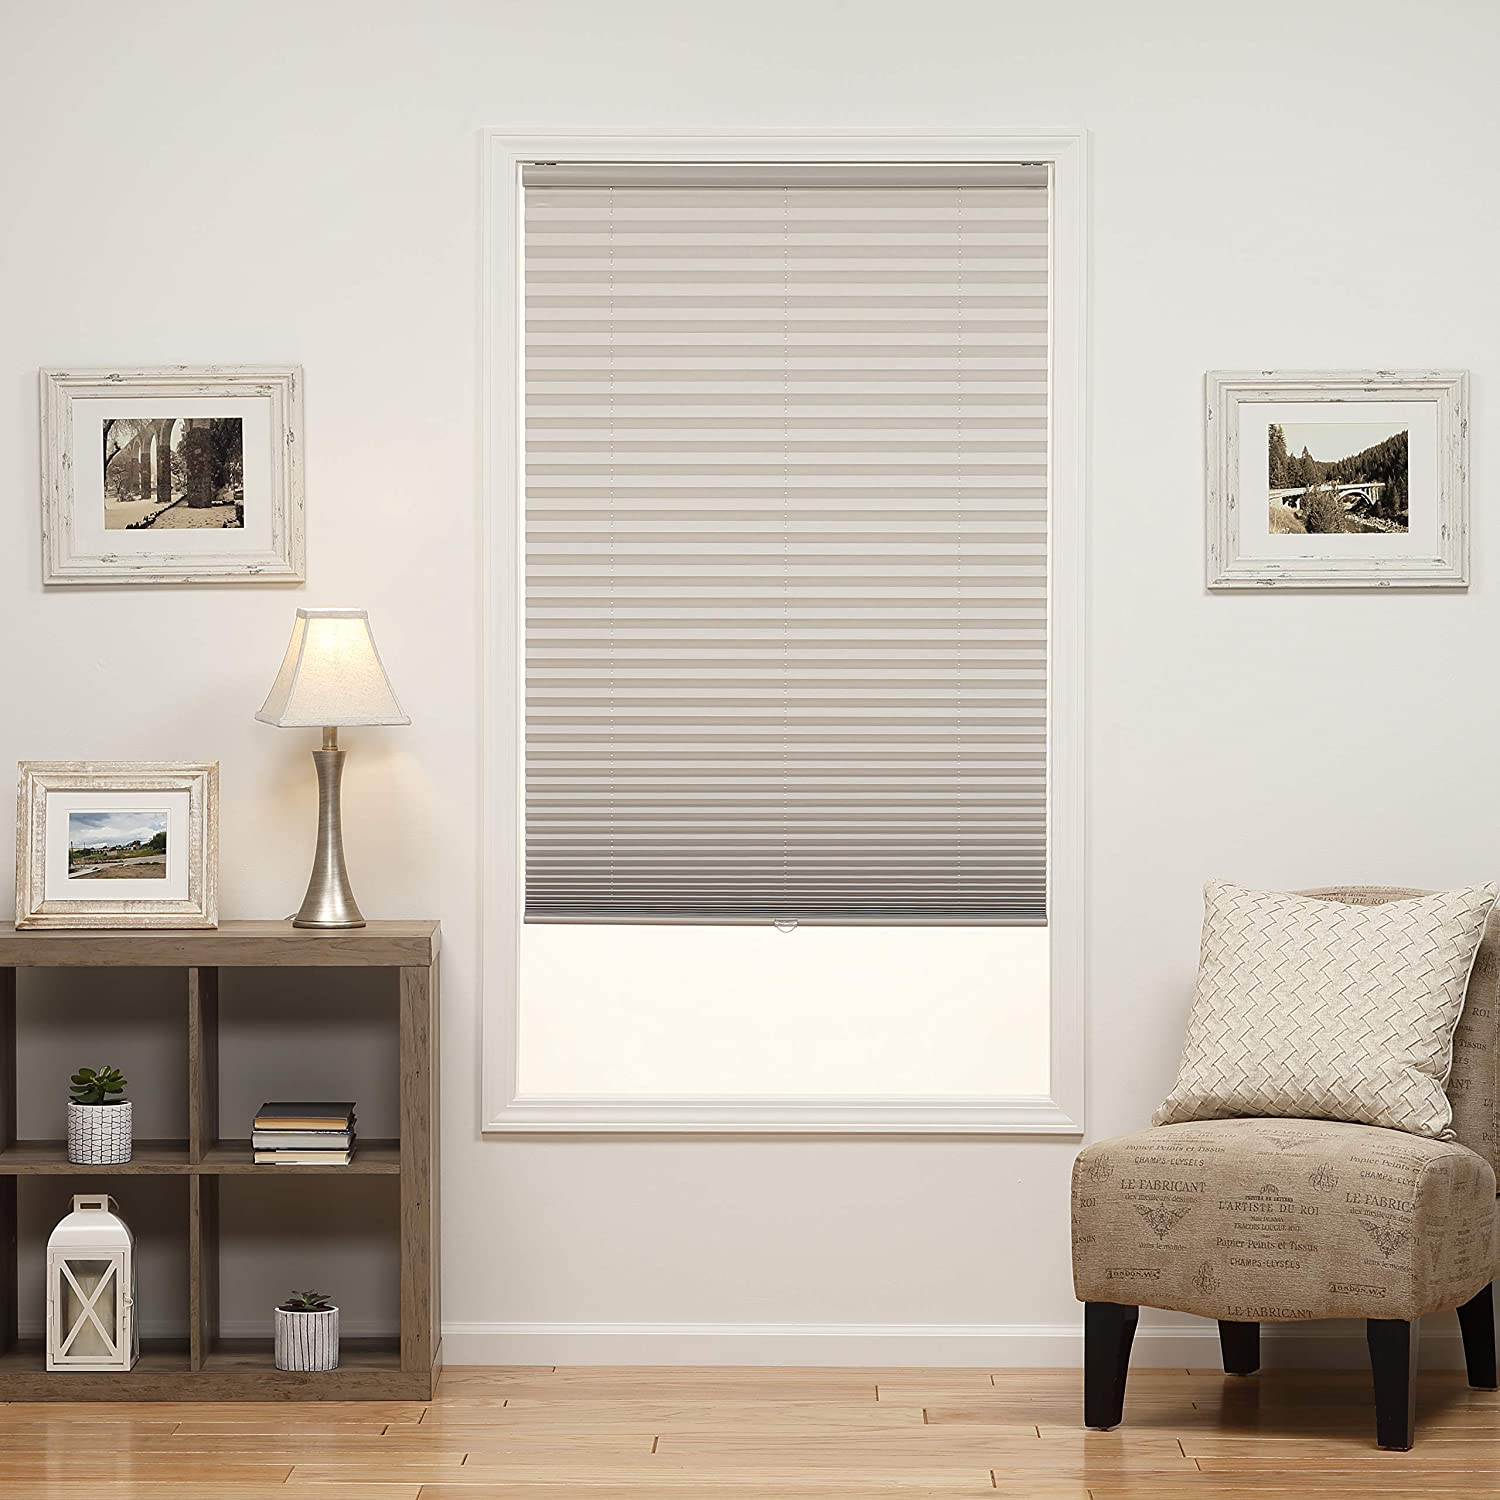 DEZ Furnishings QDLG664640 Cordless Light Filtering Pleated Shade Silver Gray 66.5W x 64L Inches